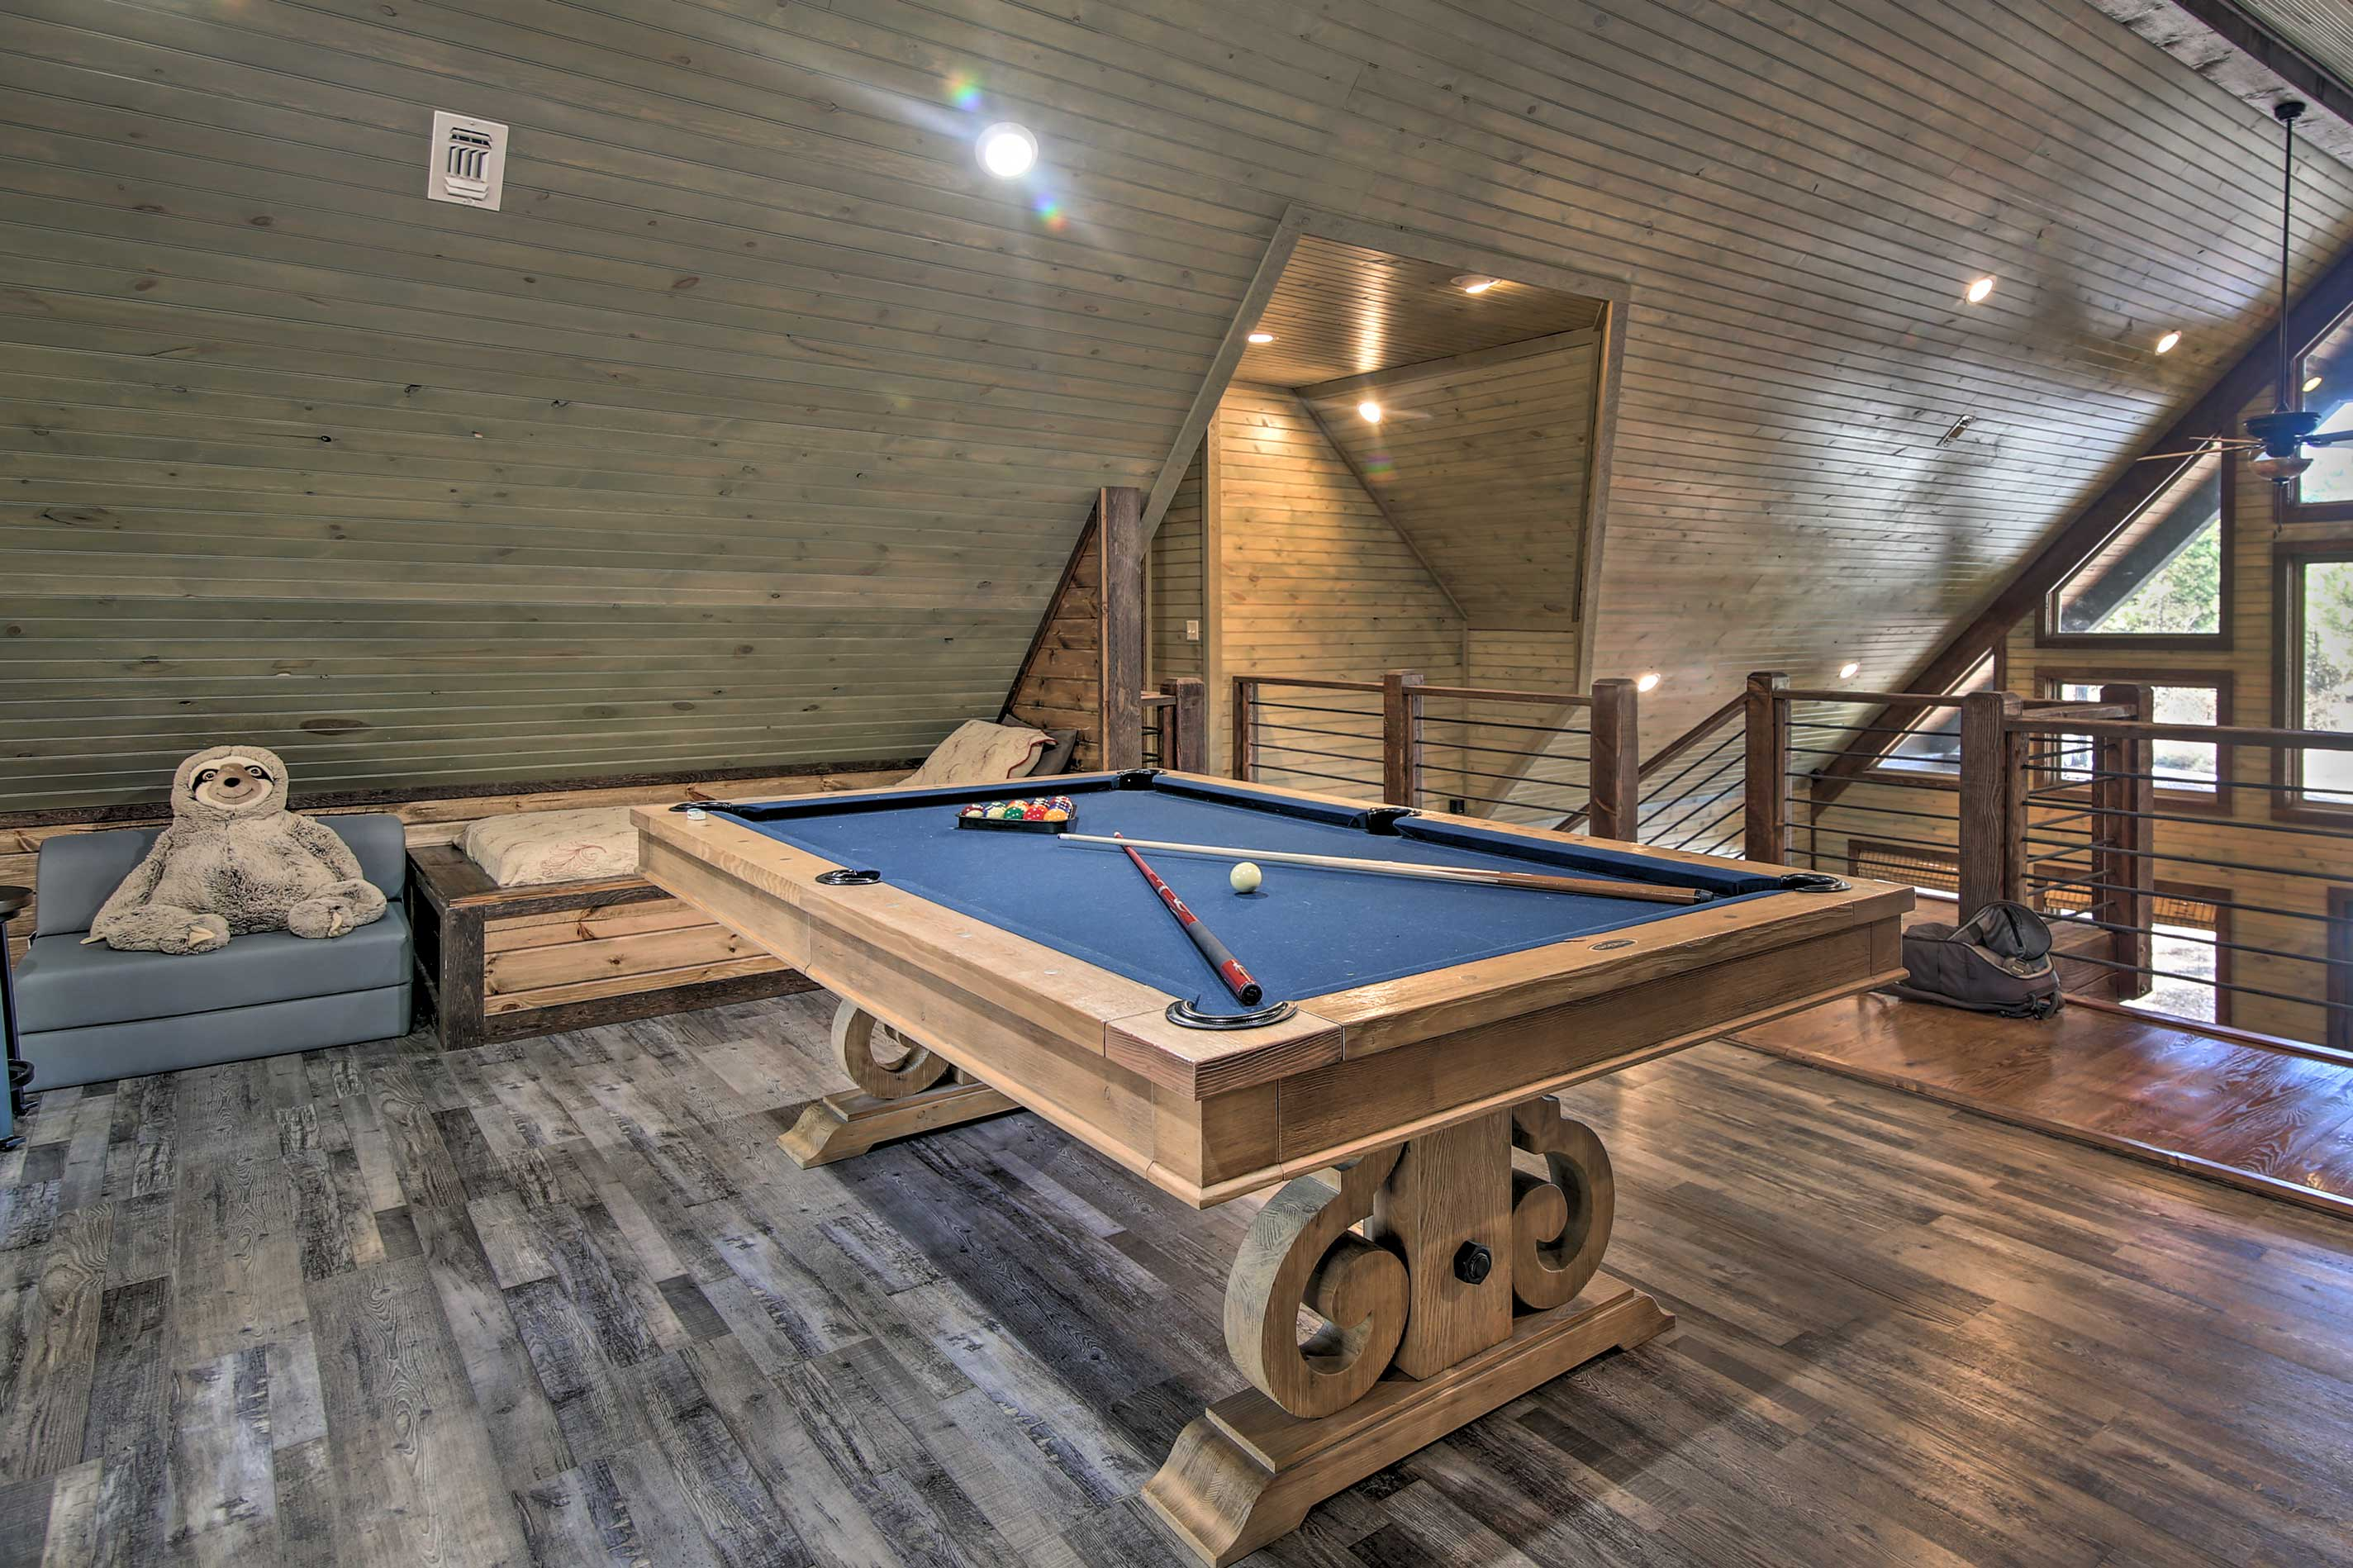 Head up to the loft for a quick billiards game!